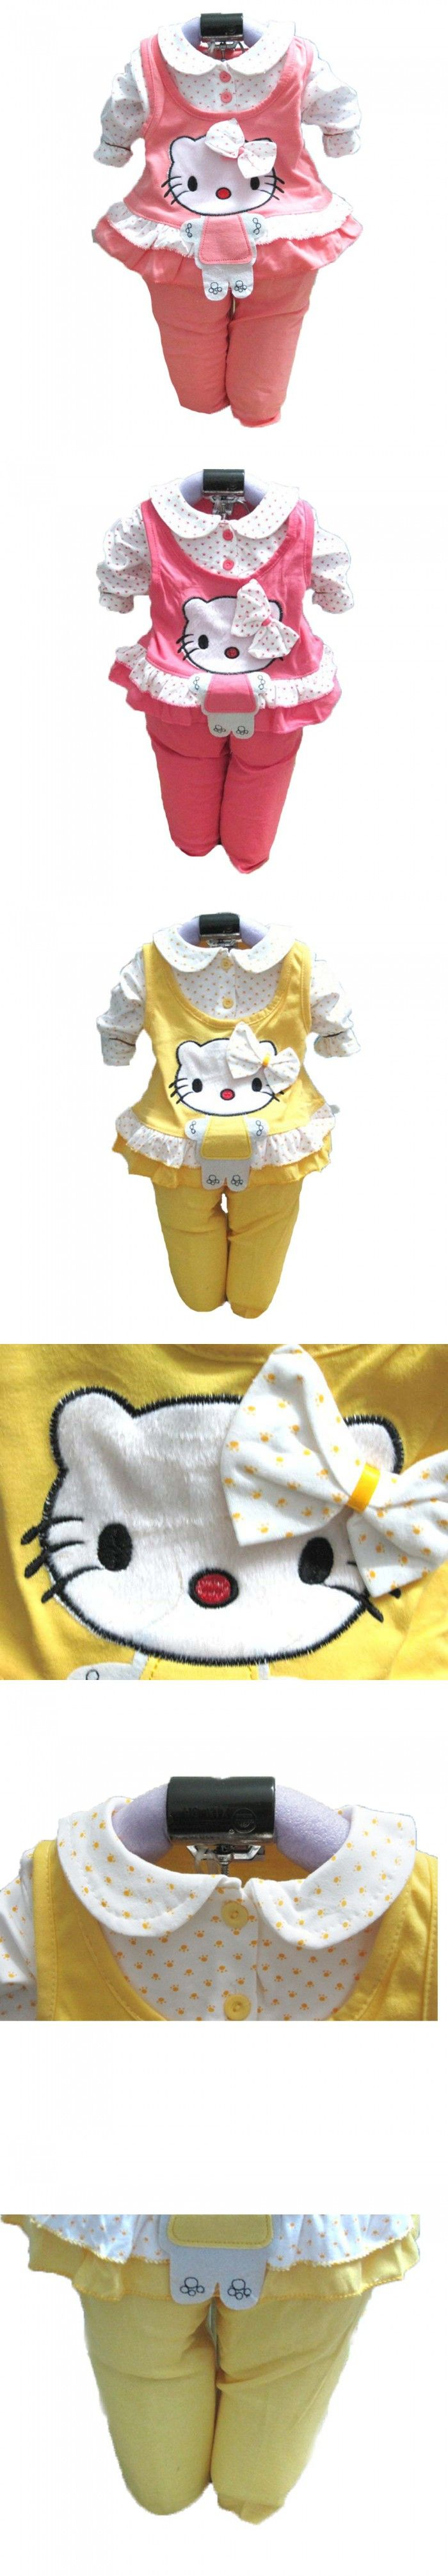 Newborn Baby Girl Clothes Bebes Baby Costumes Romper For Babies Jumpsuit Children Winter Clothing Baby Rompers Bebek Giyim $12.71